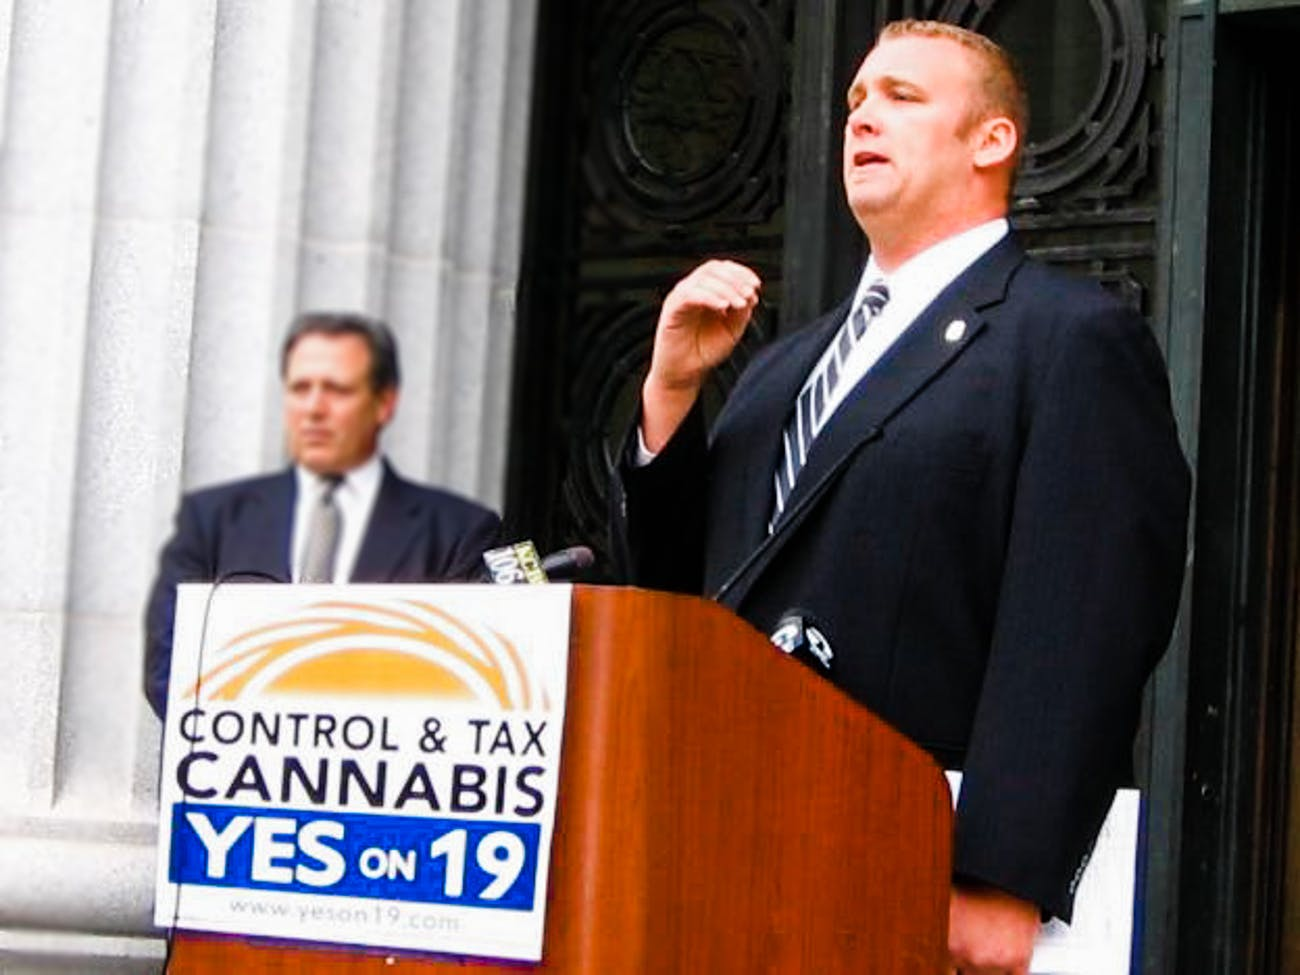 Nate Bradley is a 3 of 3 This Former Cop Became One of the Most Powerful Cannabis Activists